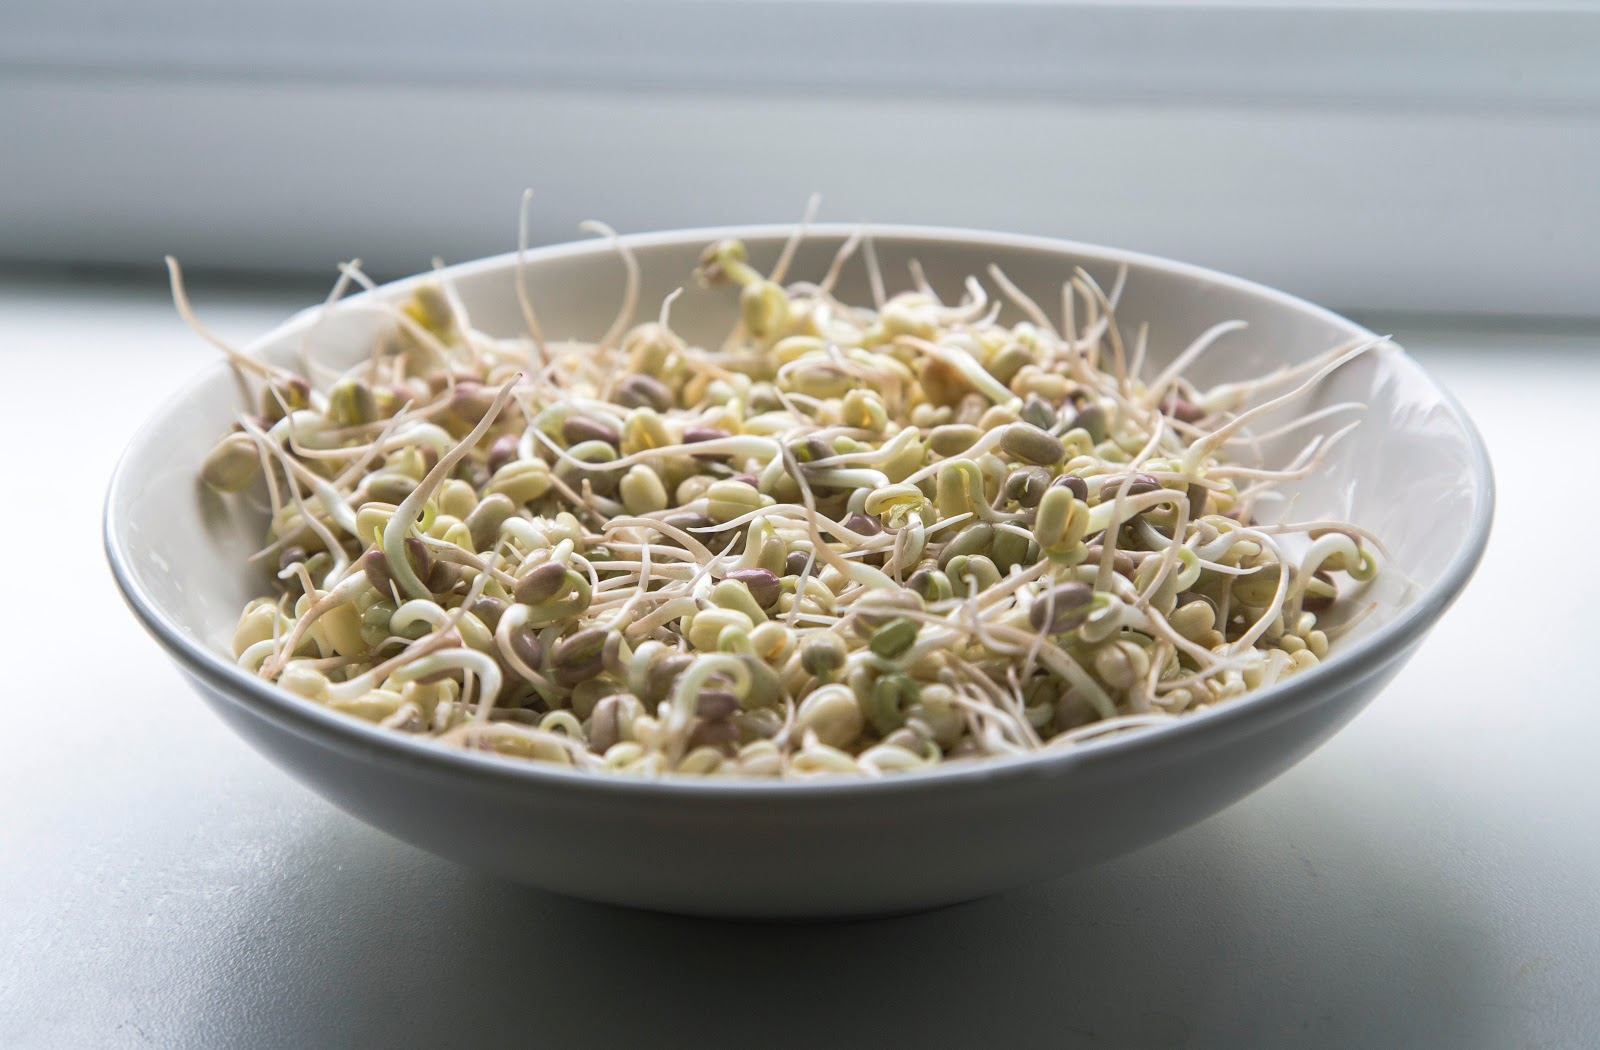 sprouts, which are an example of high-vibrations foods, in a bowl